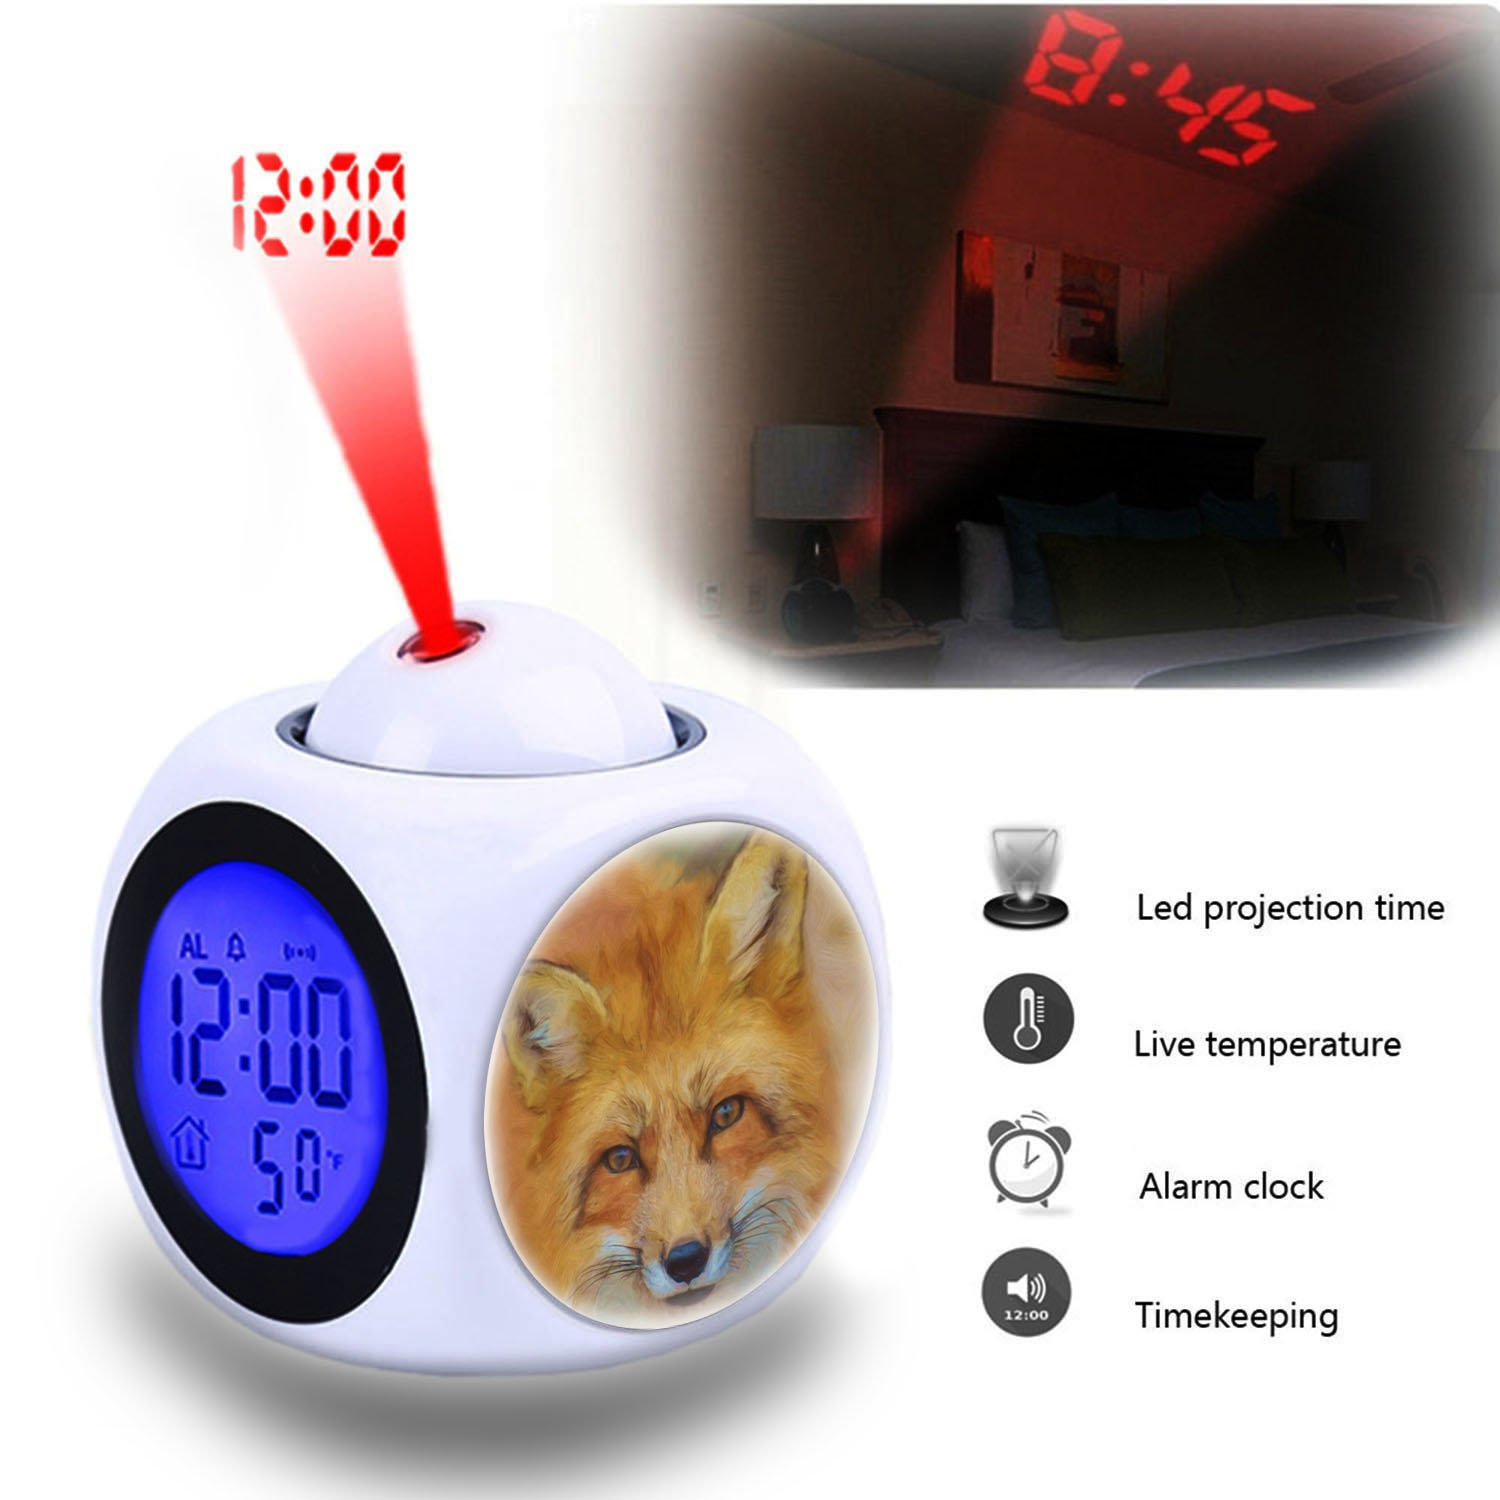 Amazon.com: Projection Alarm Clock Wake Up Bedroom with Data ...